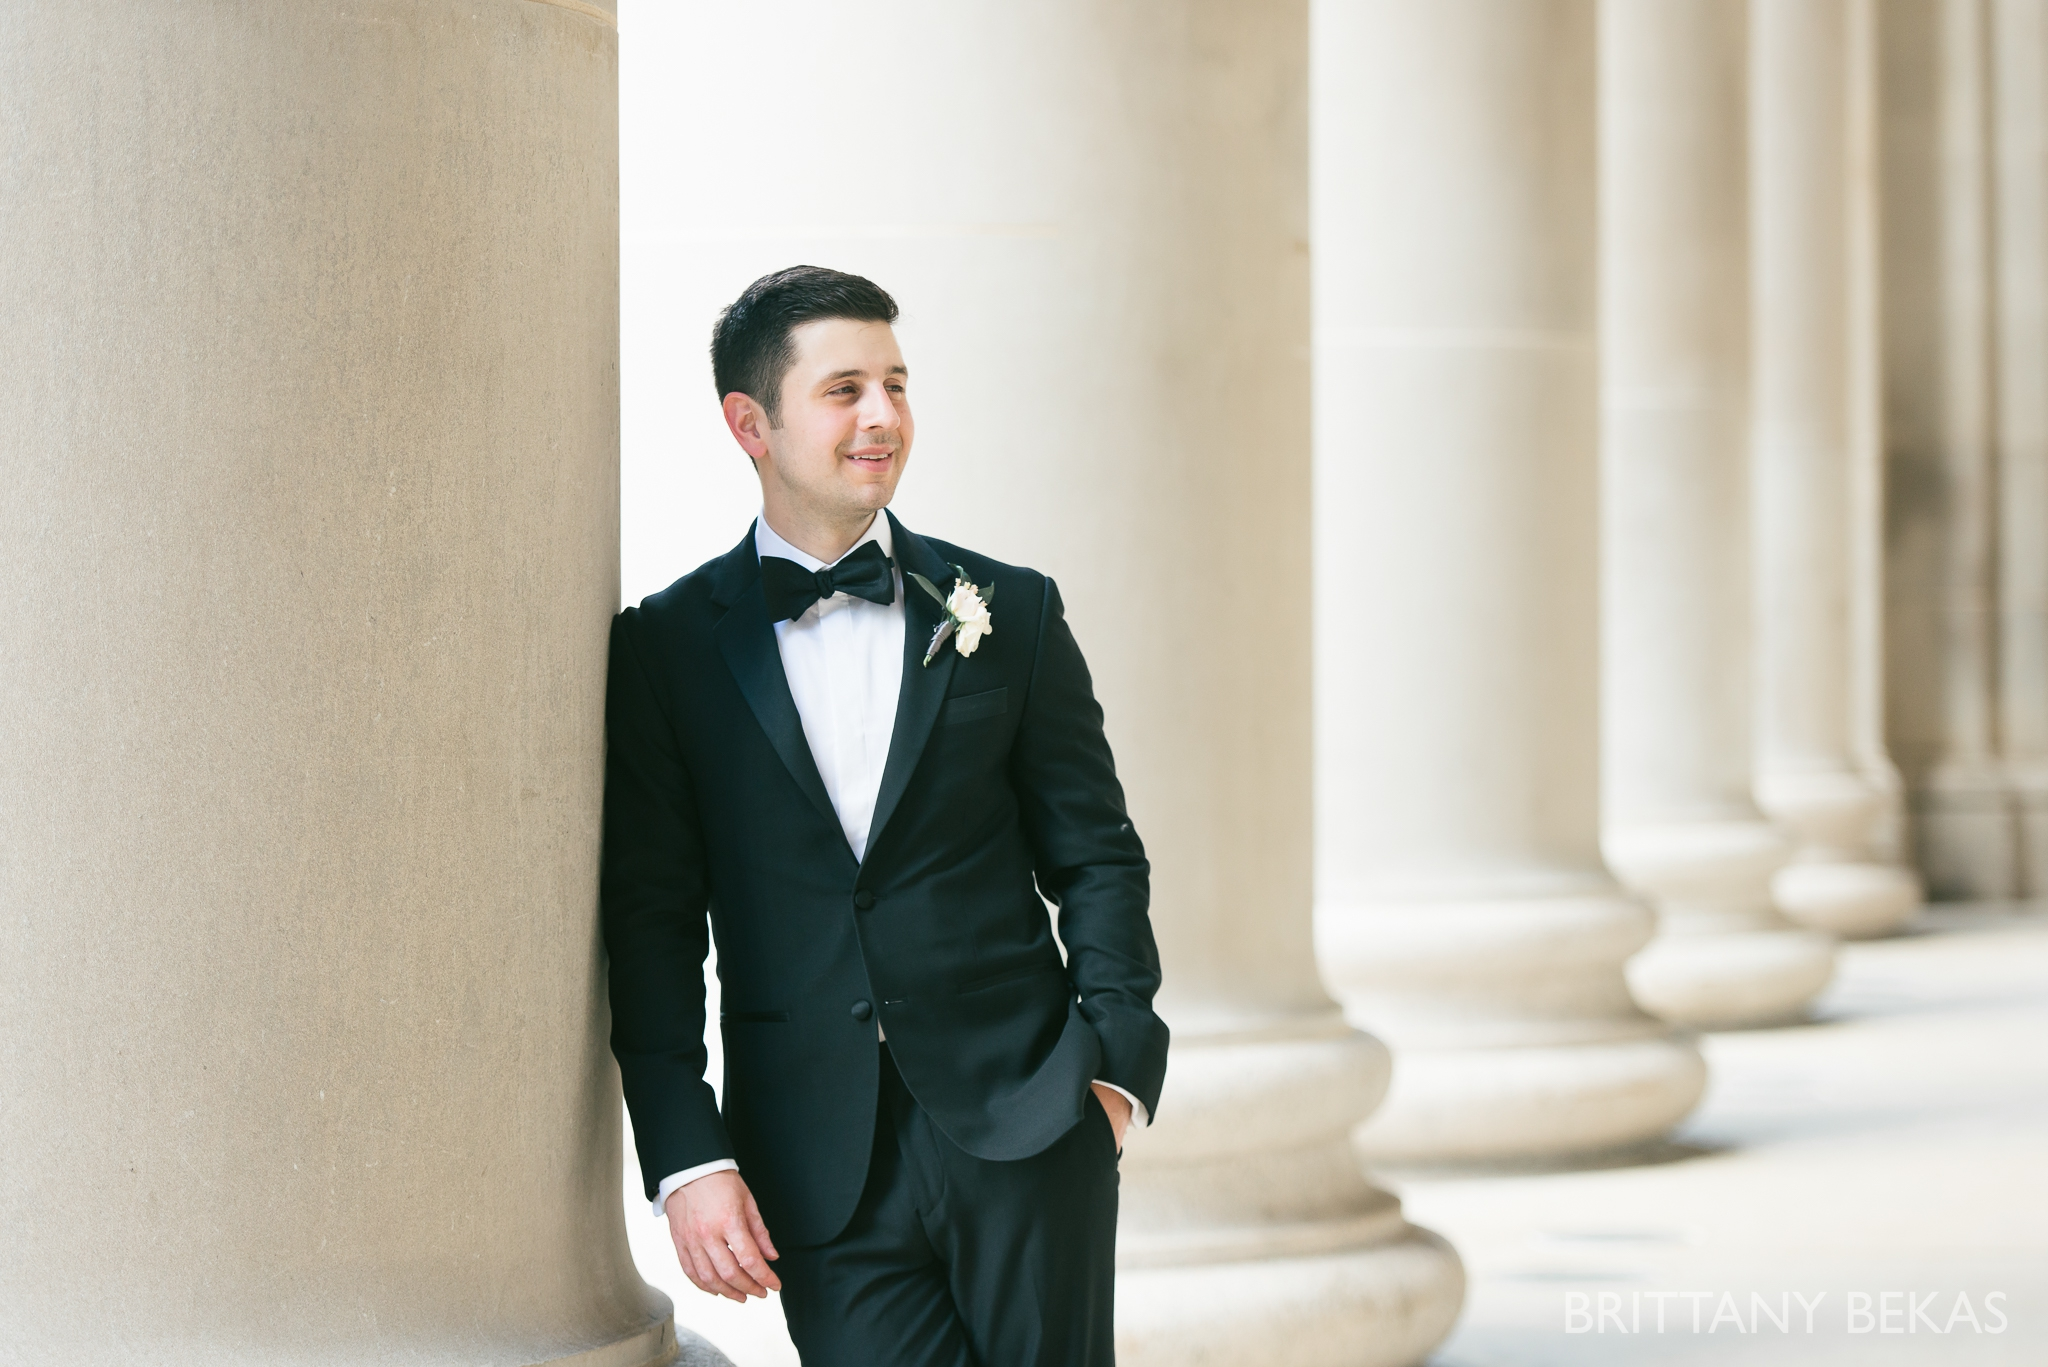 The Murphy Wedding Photos - Brittany Bekas Photography_0022